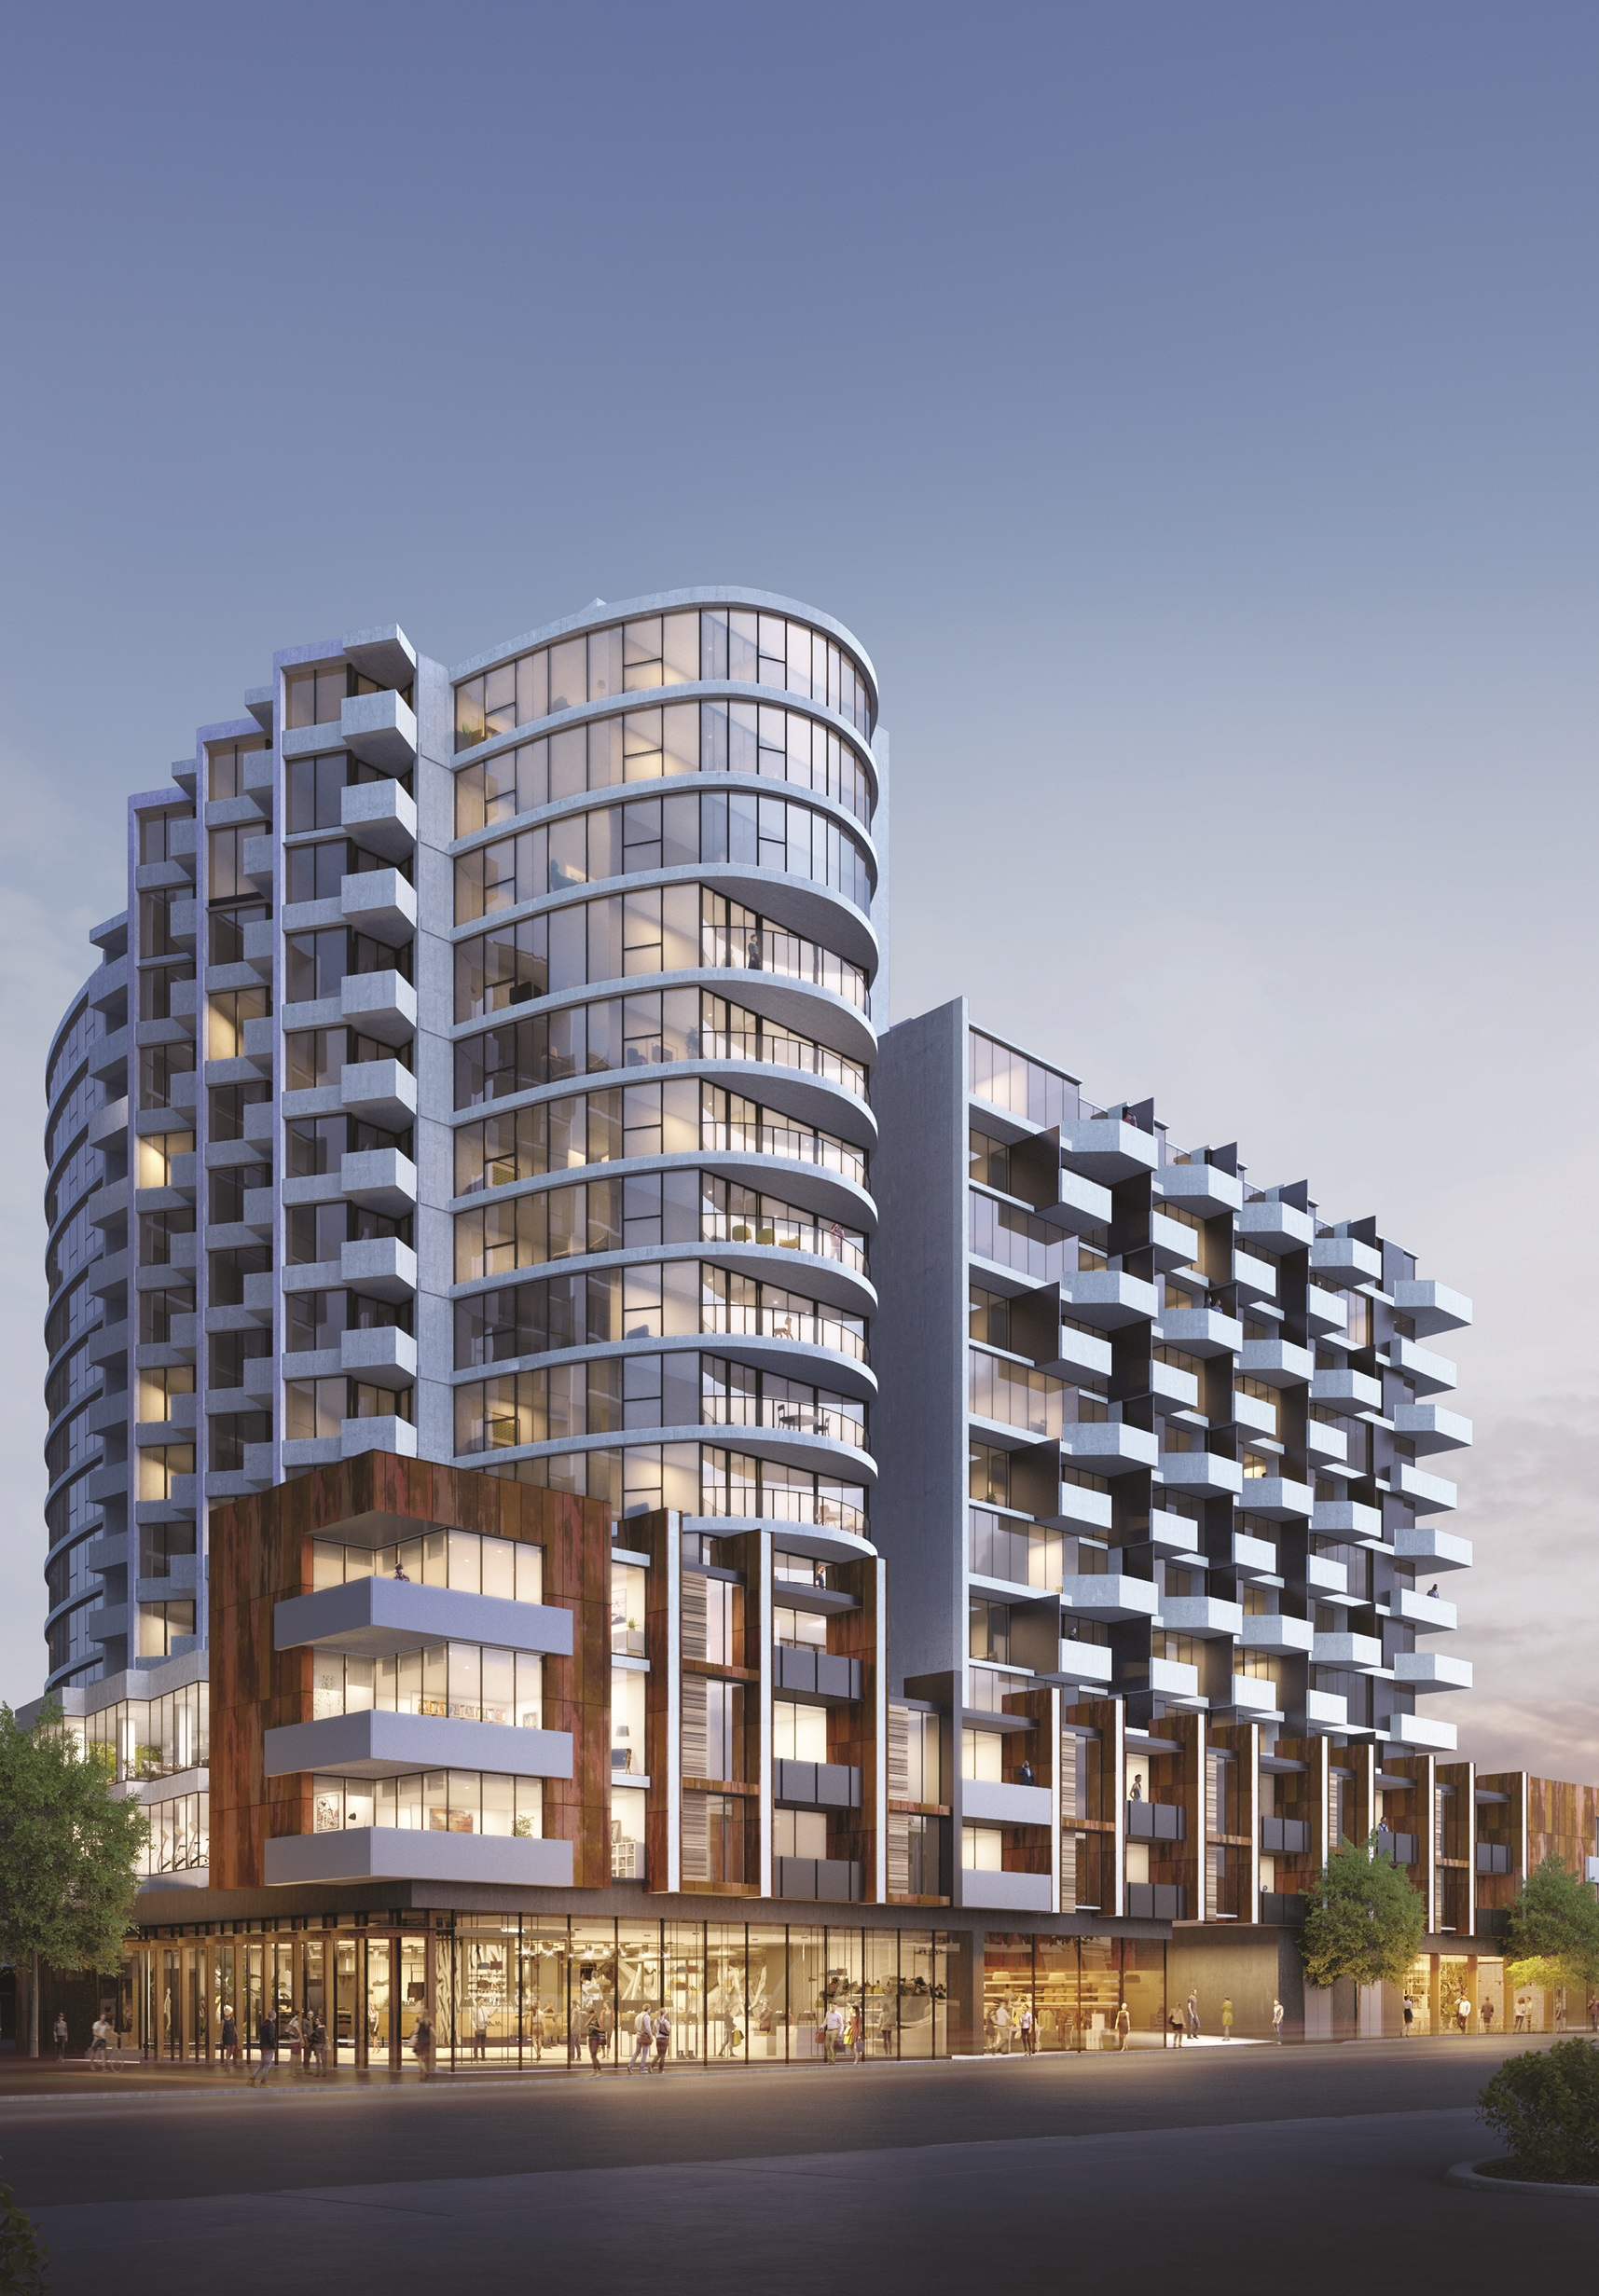 Stage one includes a 15 and 12 split-level tower comprising apartments, lower-level retail and hospitality outlets.